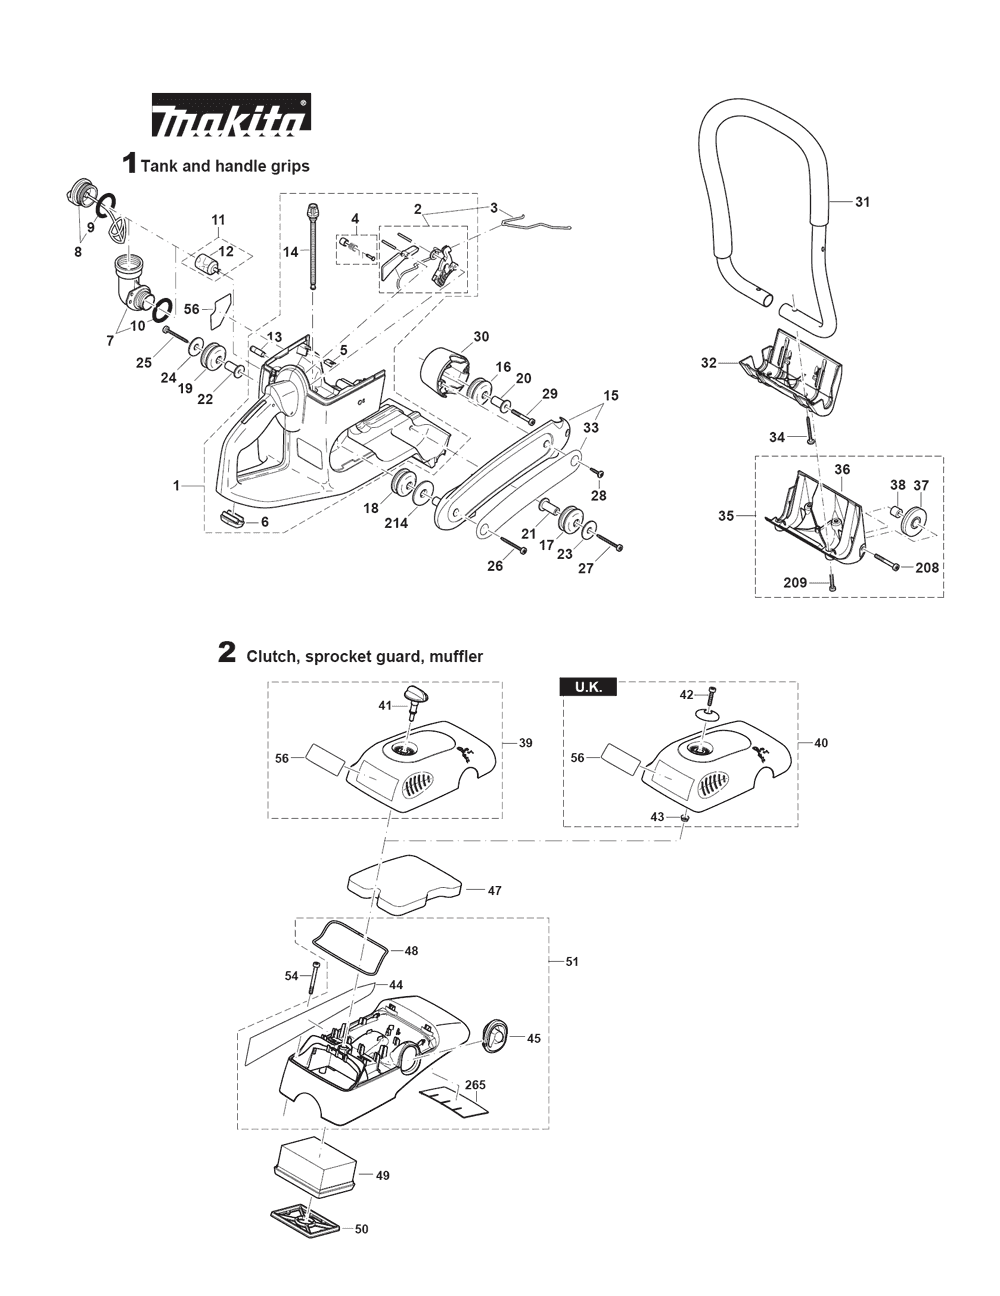 Buy Makita Dpc8132 16 Inch 81cc Power Cutter Ek8100 Replacement Wilton Sbv100 Parts List And Diagram Ereplacementpartscom Schematic